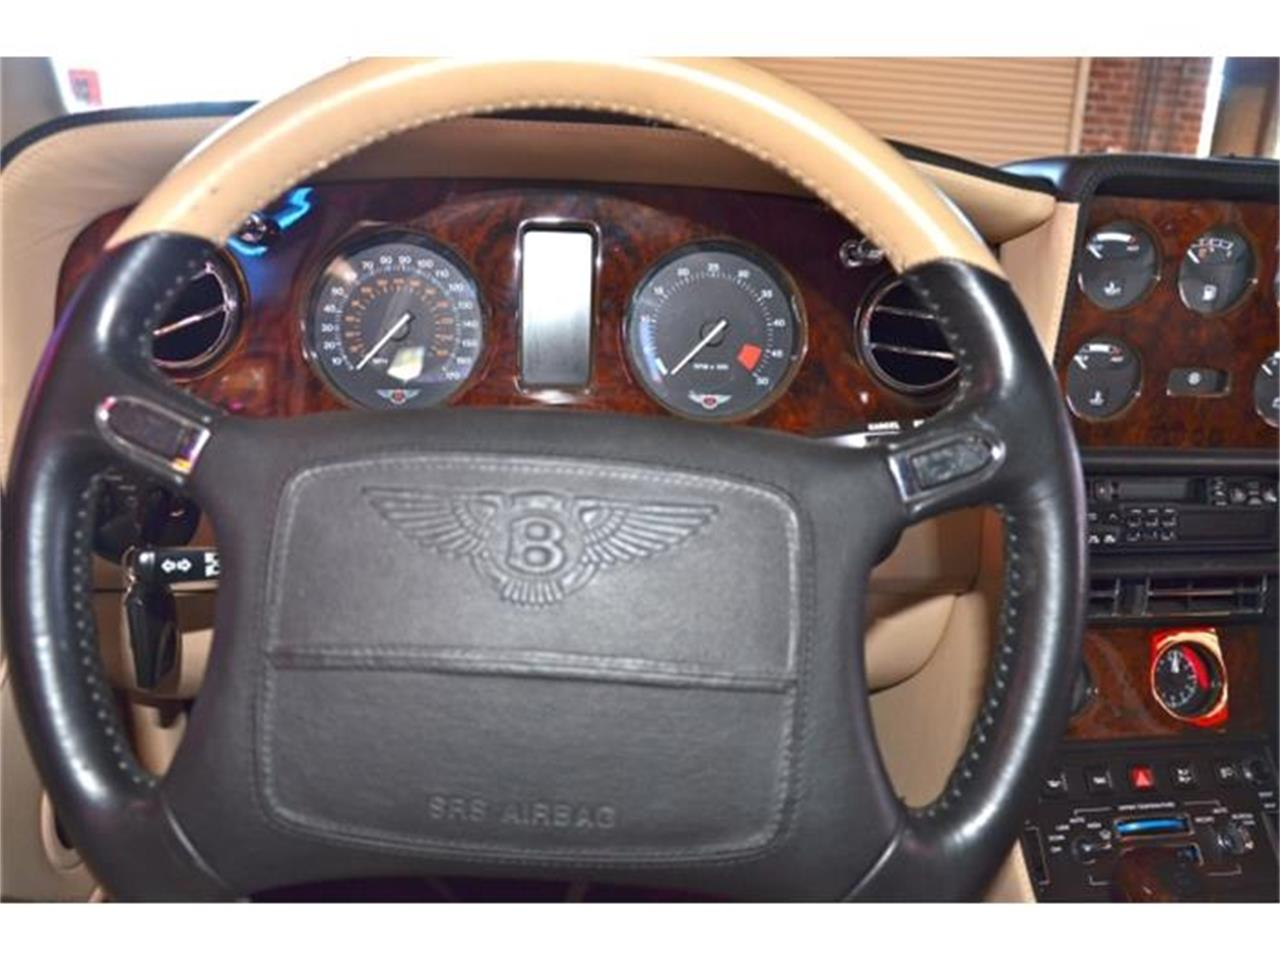 Large Picture of '98 Bentley Continental located in Lodi California - $70,000.00 - AZR4